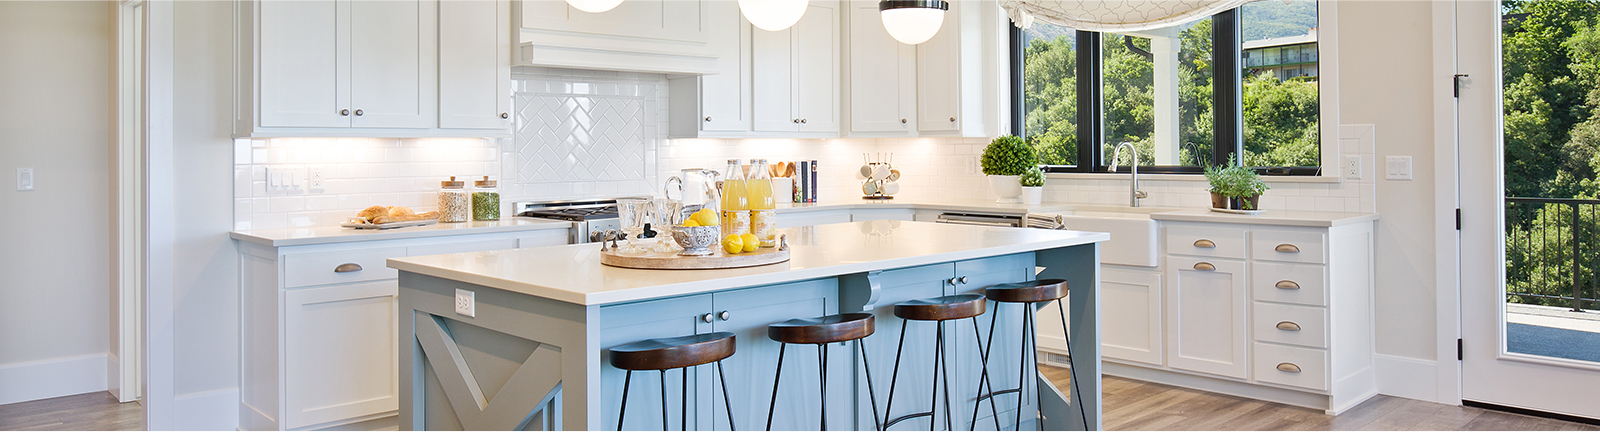 White kitchen with beautiful center table